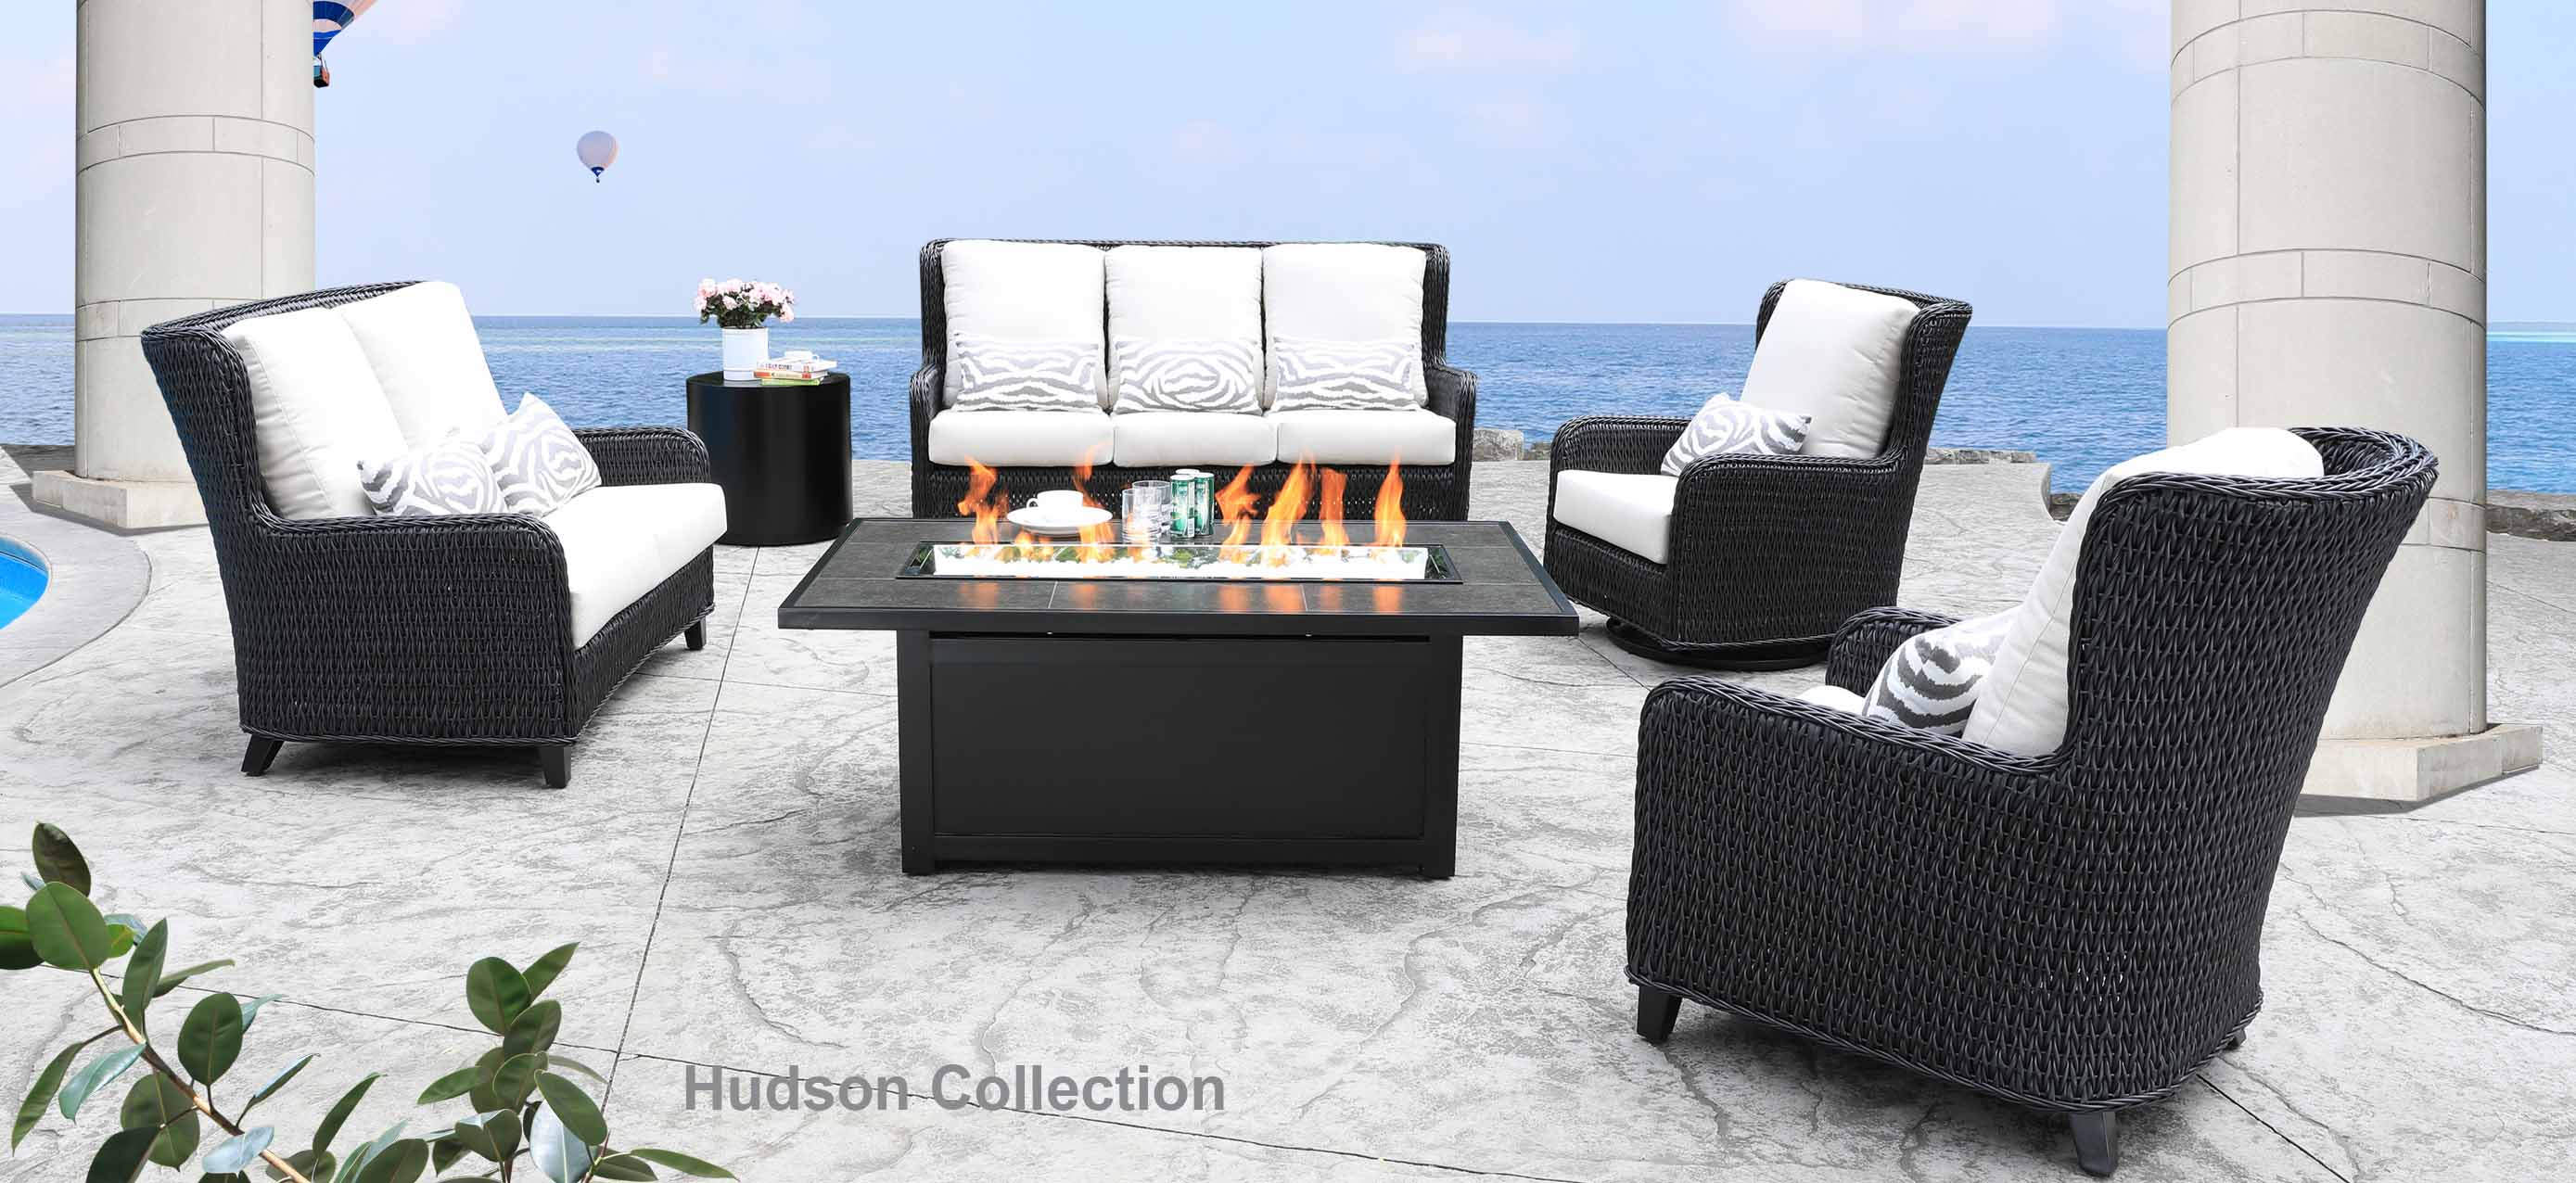 patio furniture cabanacoast hudson swing mississauga outdoor wicker glider canadian tire side table chaise lounge replacement parts miami inch cushion vintage double yard person